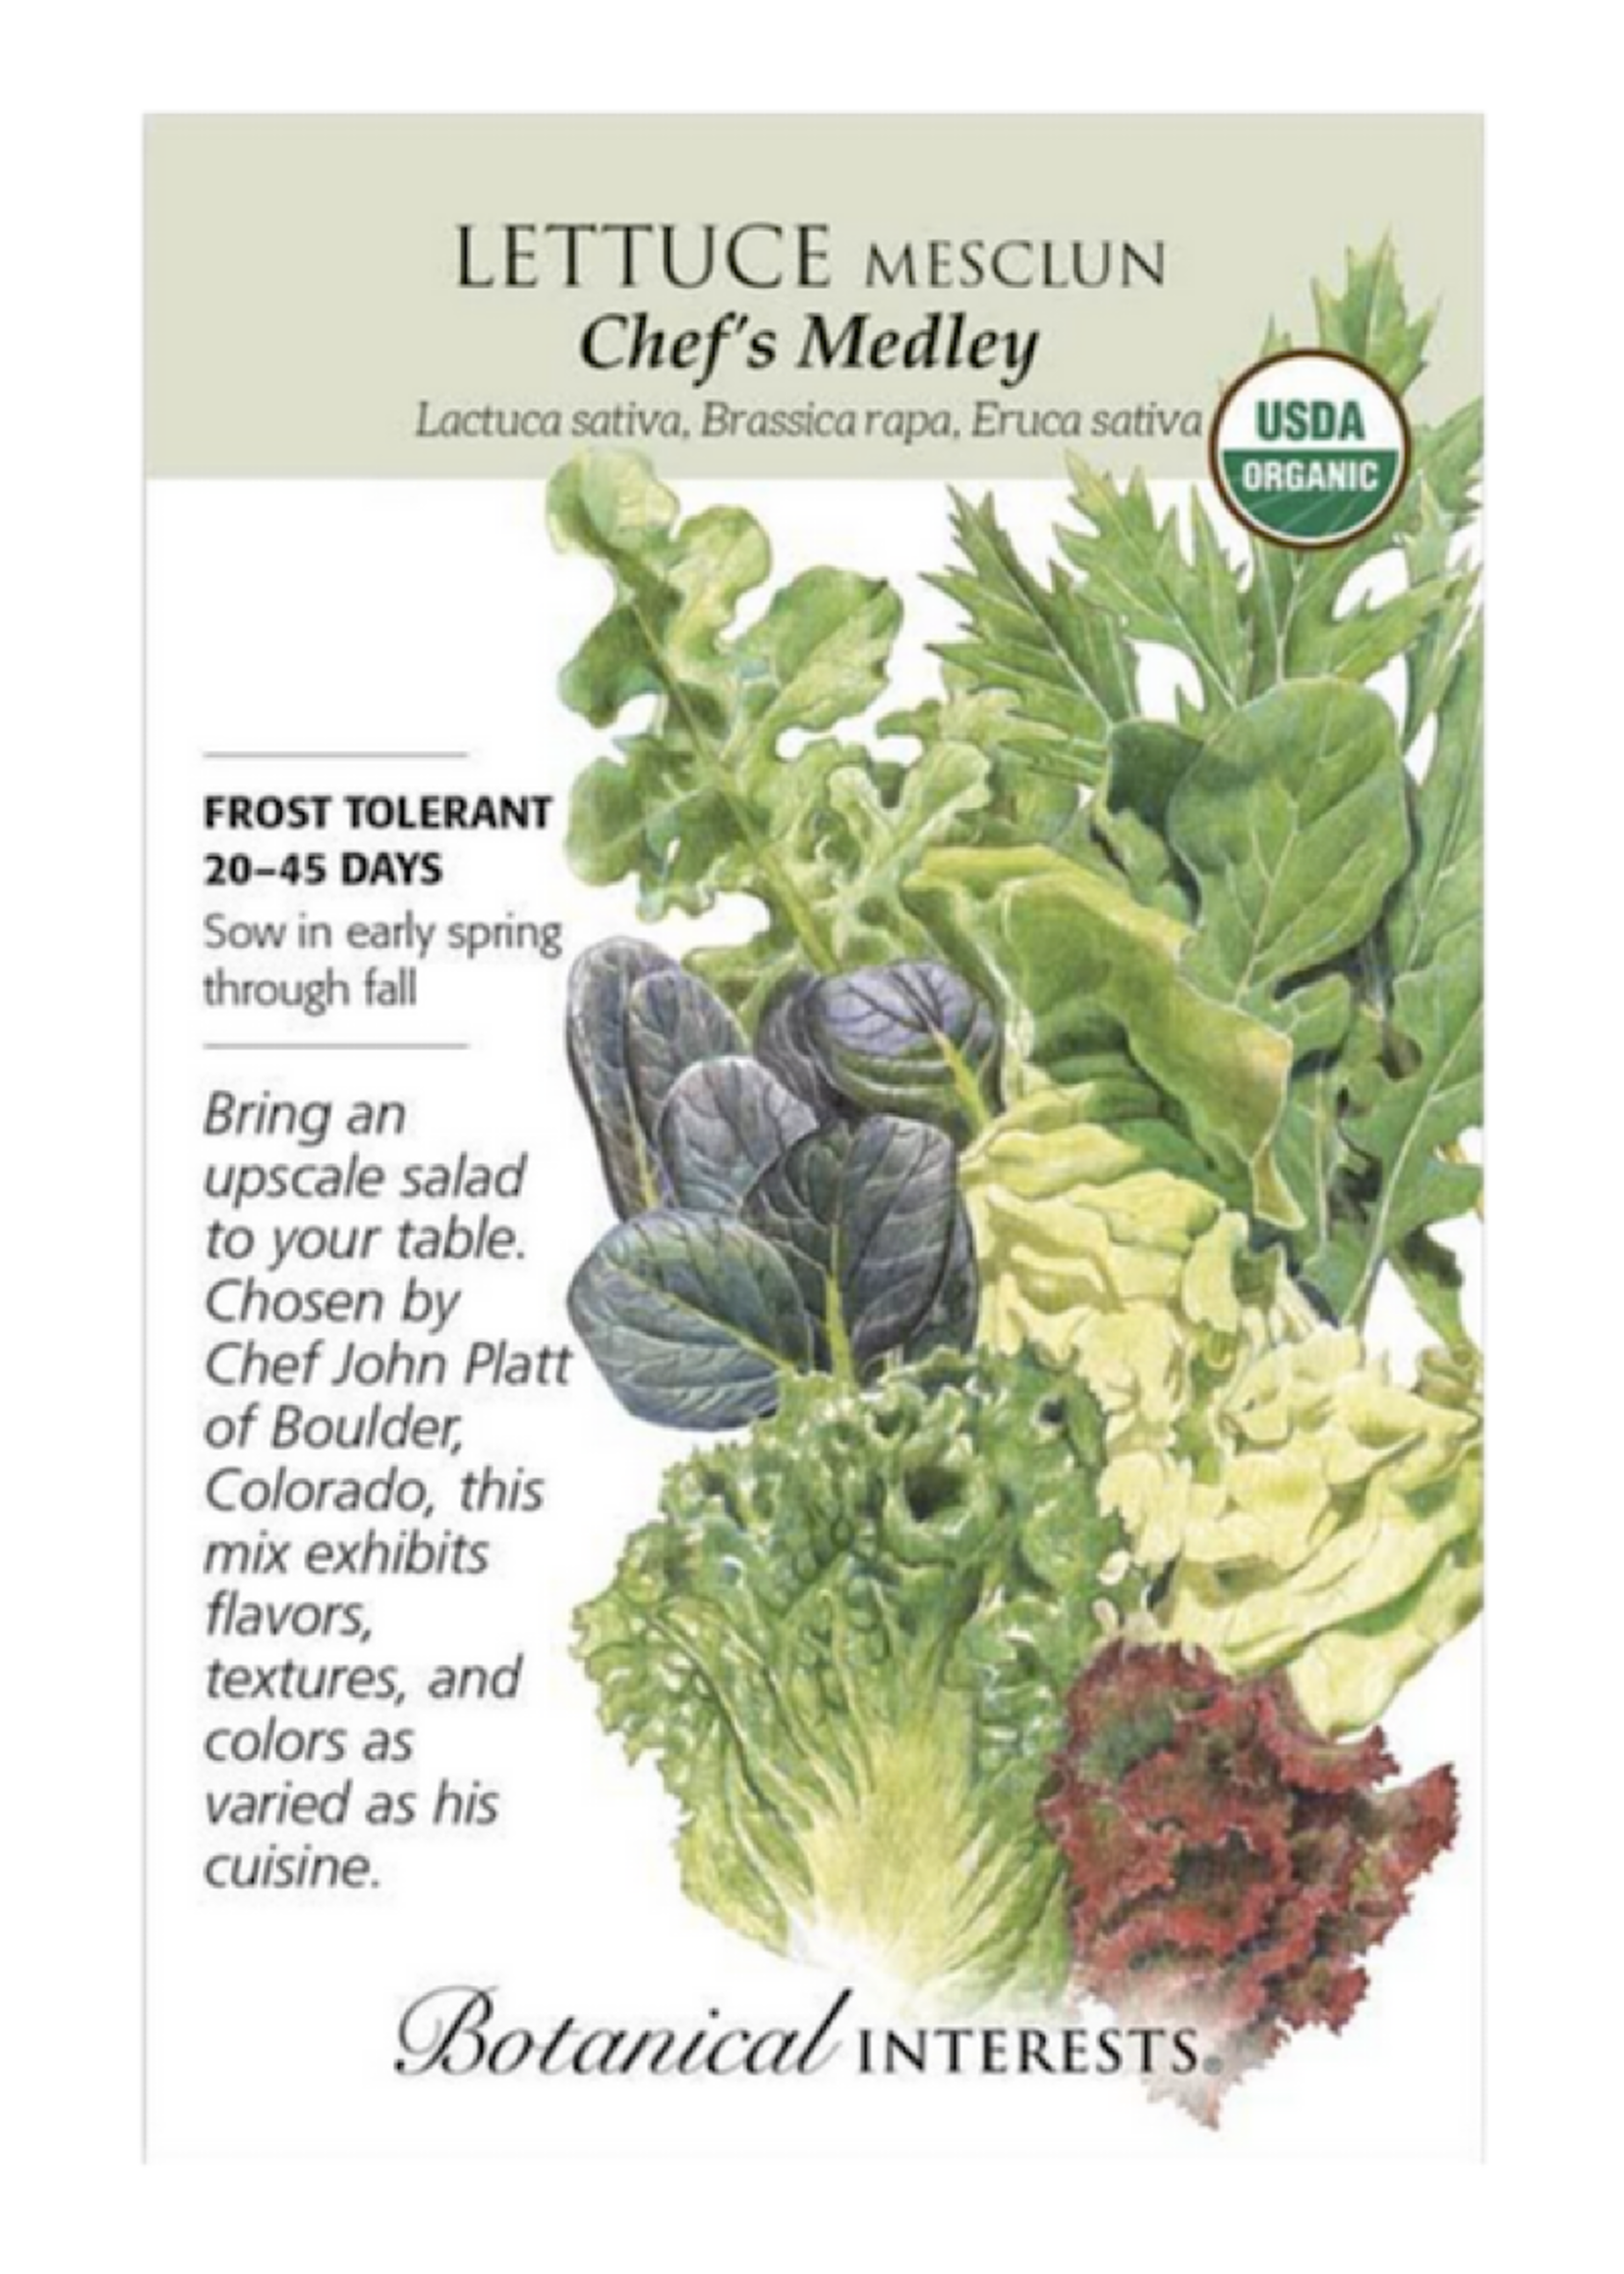 Lettuce Mesclun 'Chef's Medley' Seed Pack